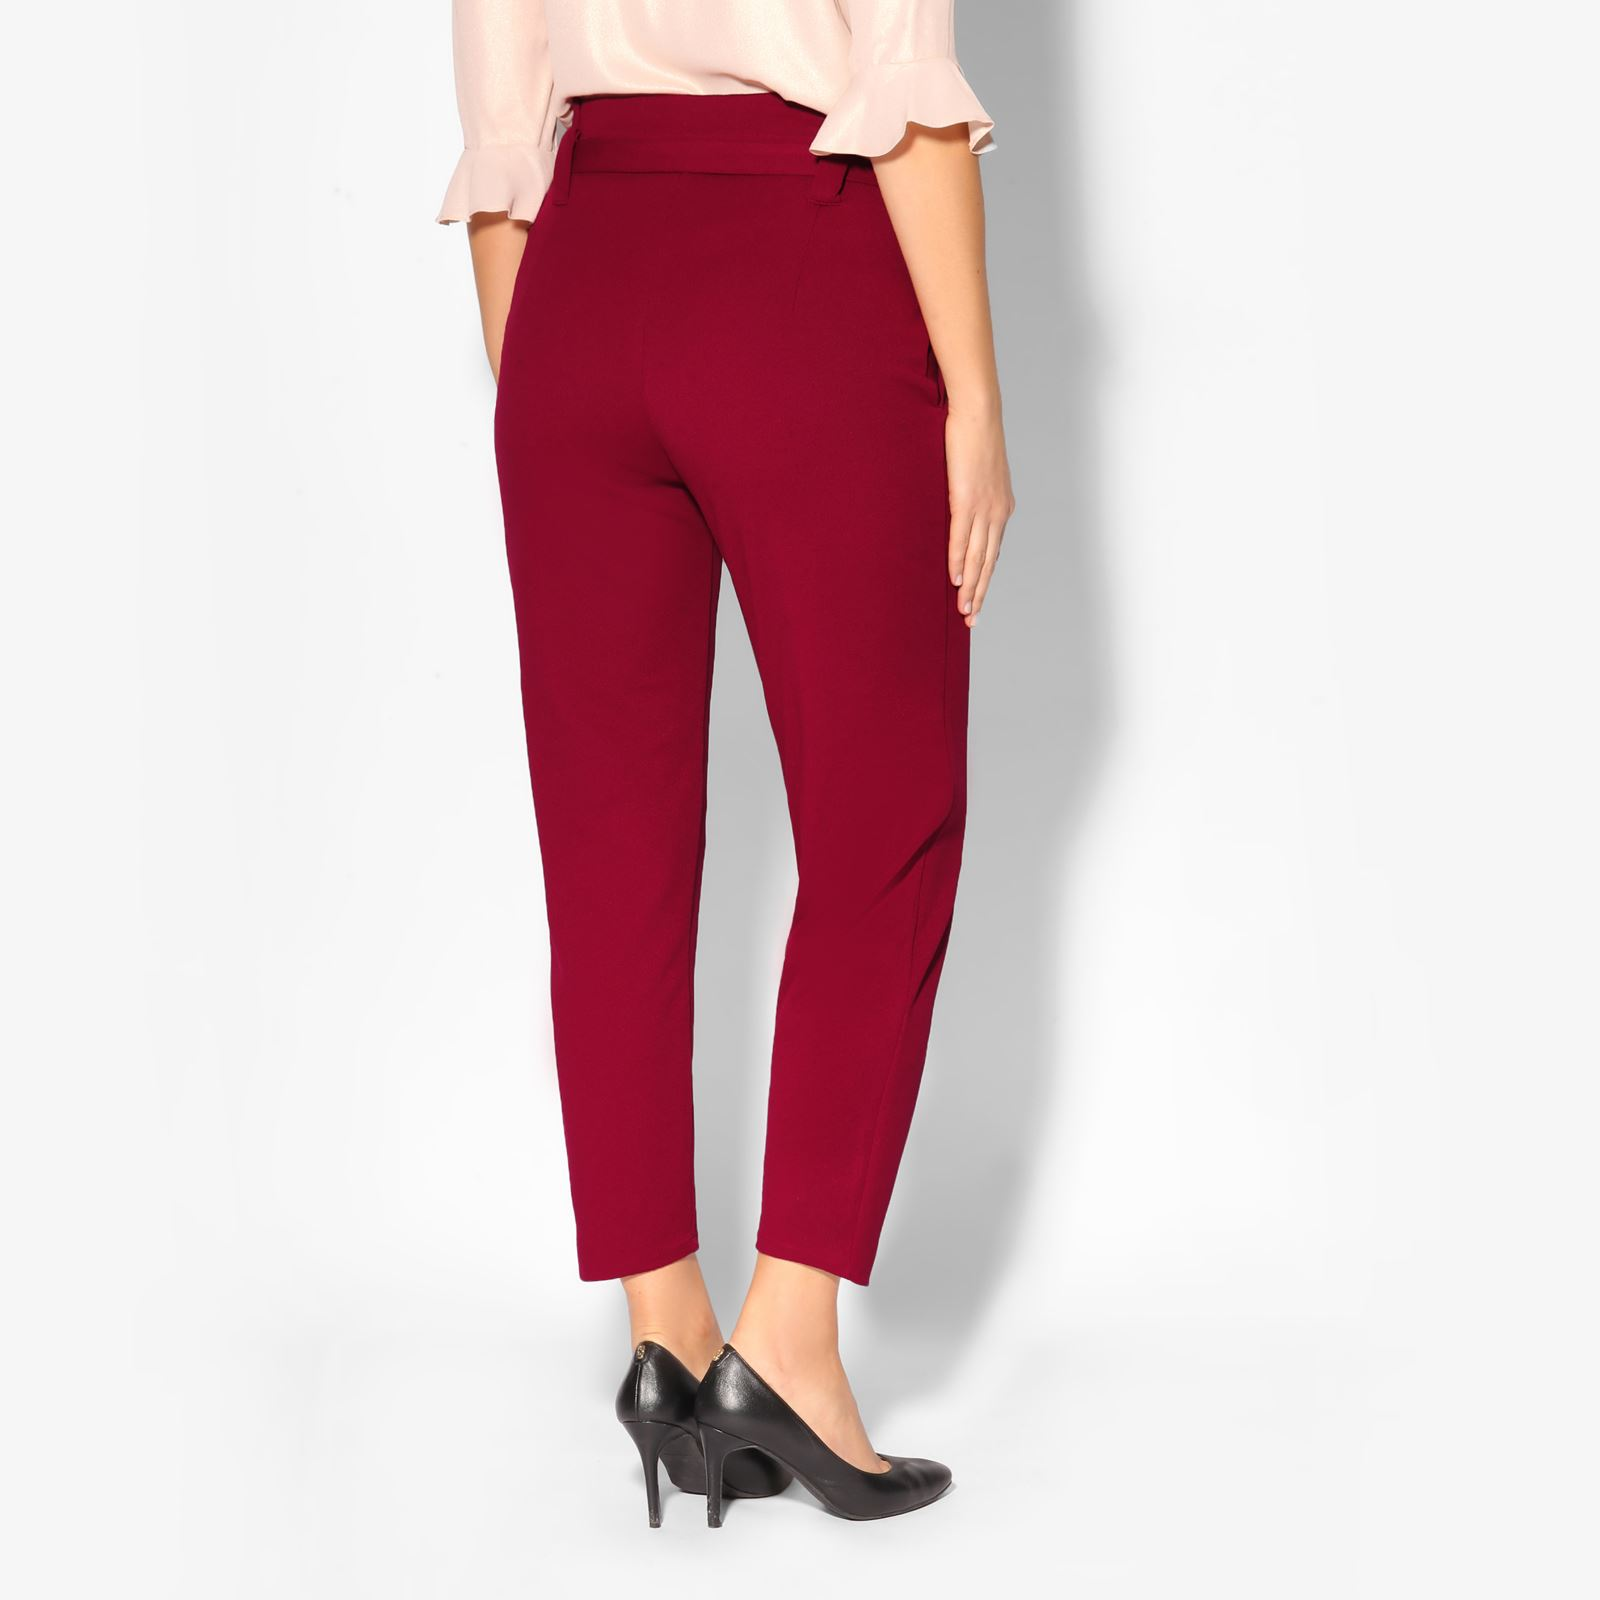 Women-High-Waist-Tapered-Pencil-Paperbag-Ladies-Trousers-Cigarette-Pants-Size thumbnail 7